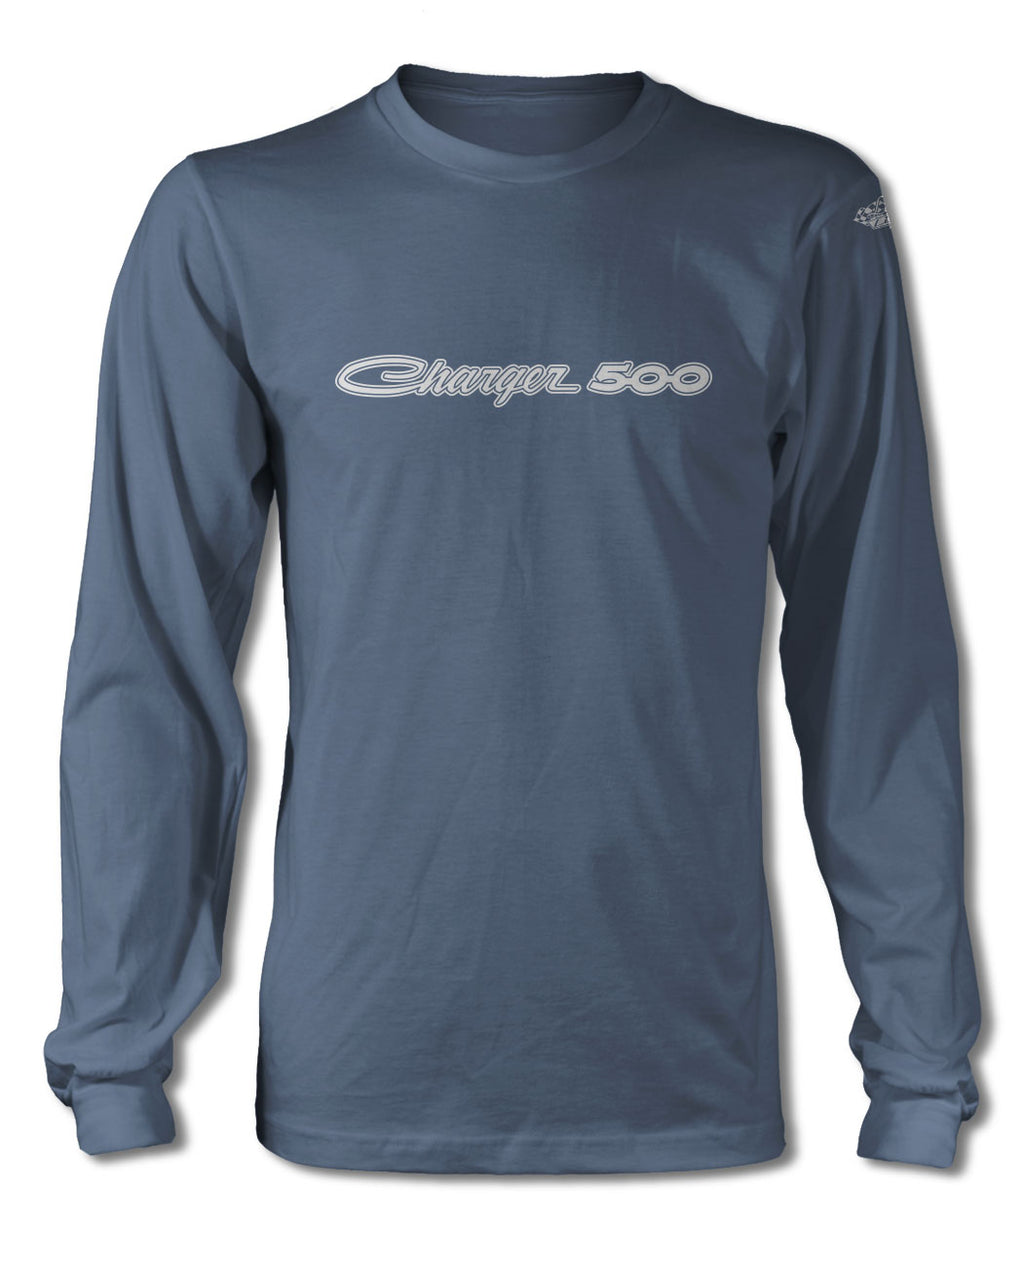 1969 Dodge Charger 500 Emblem T-Shirt - Long Sleeves - Emblem